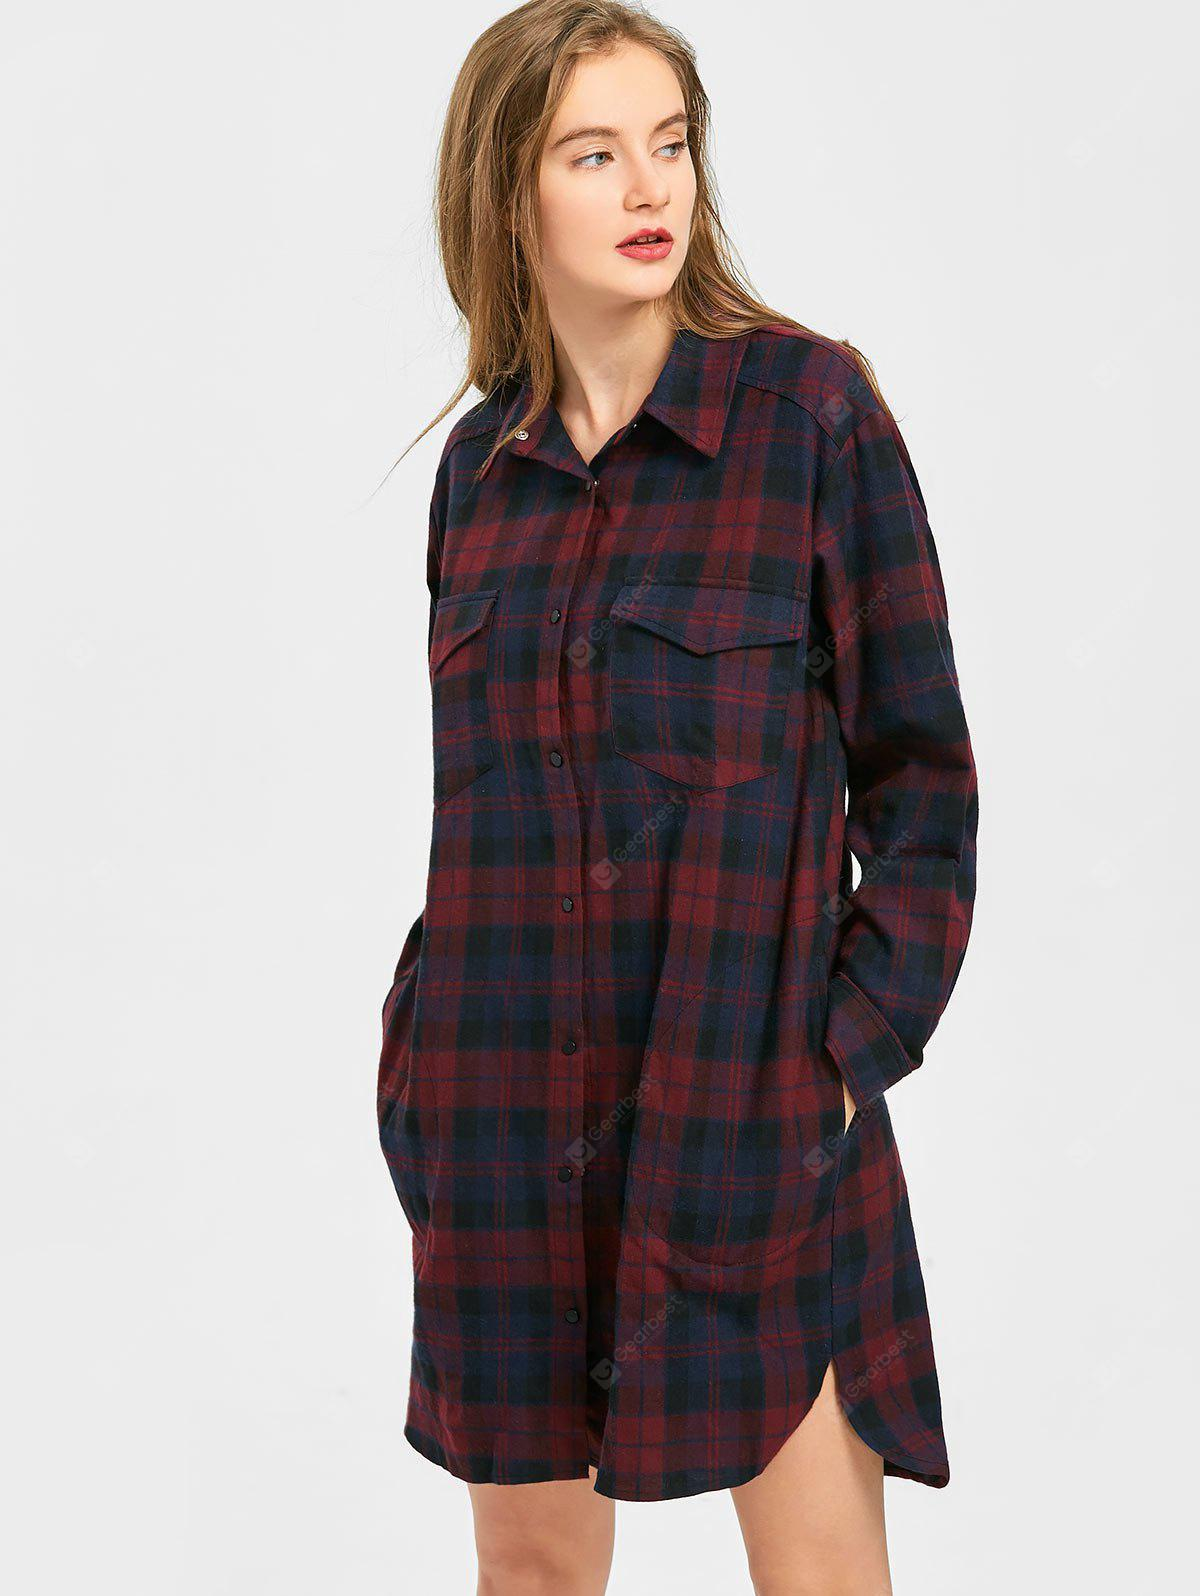 Snap Button Checked Shirt Dress with Pockets